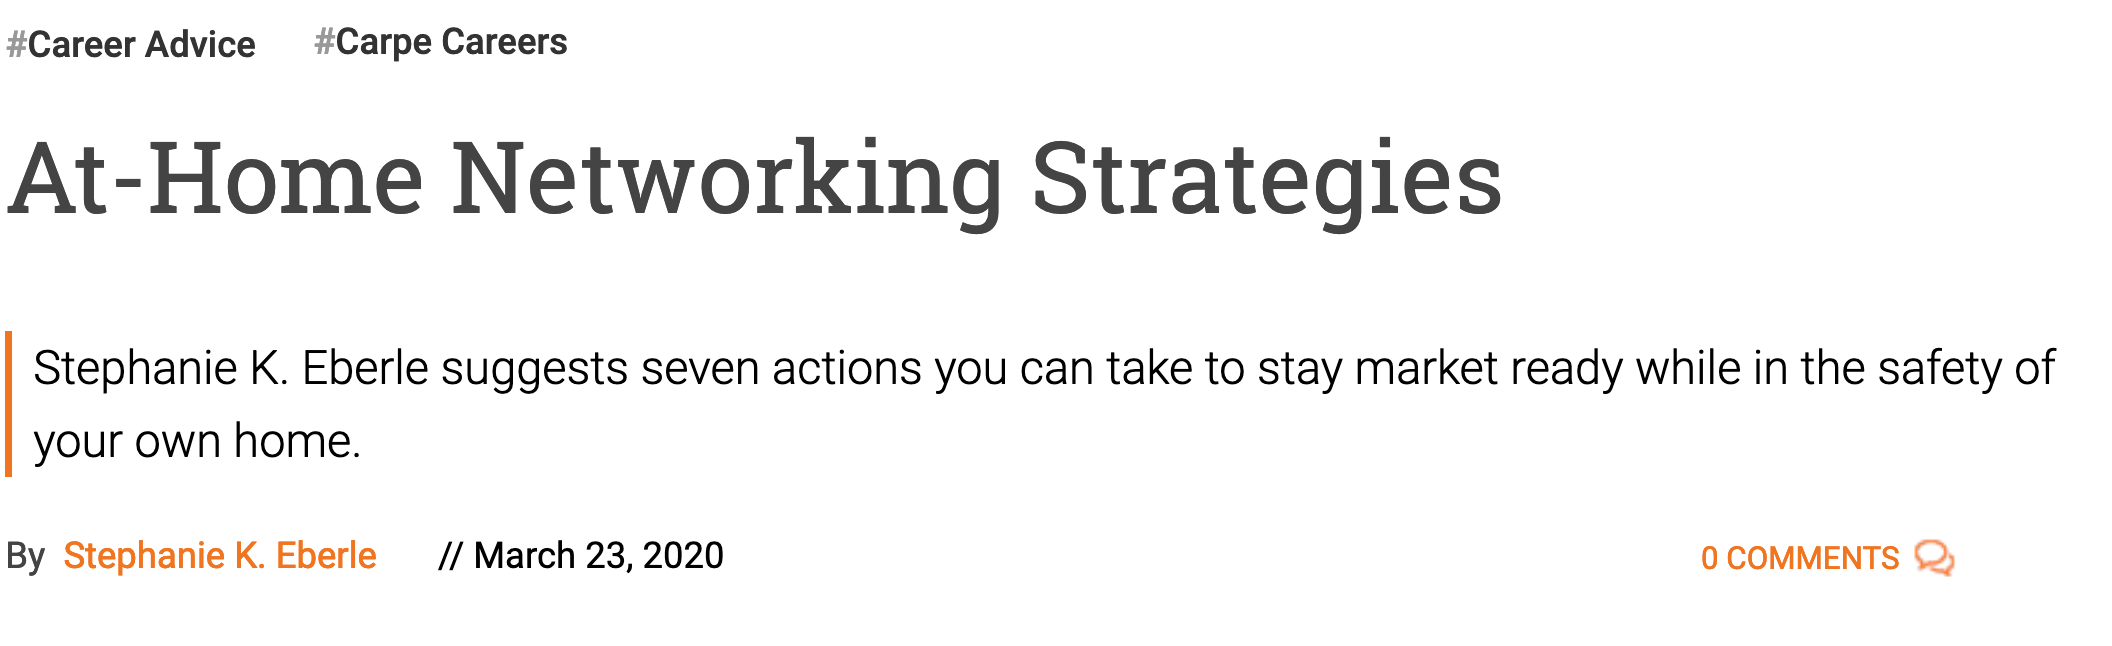 At home networking strategies - seven tips to stay market ready at home